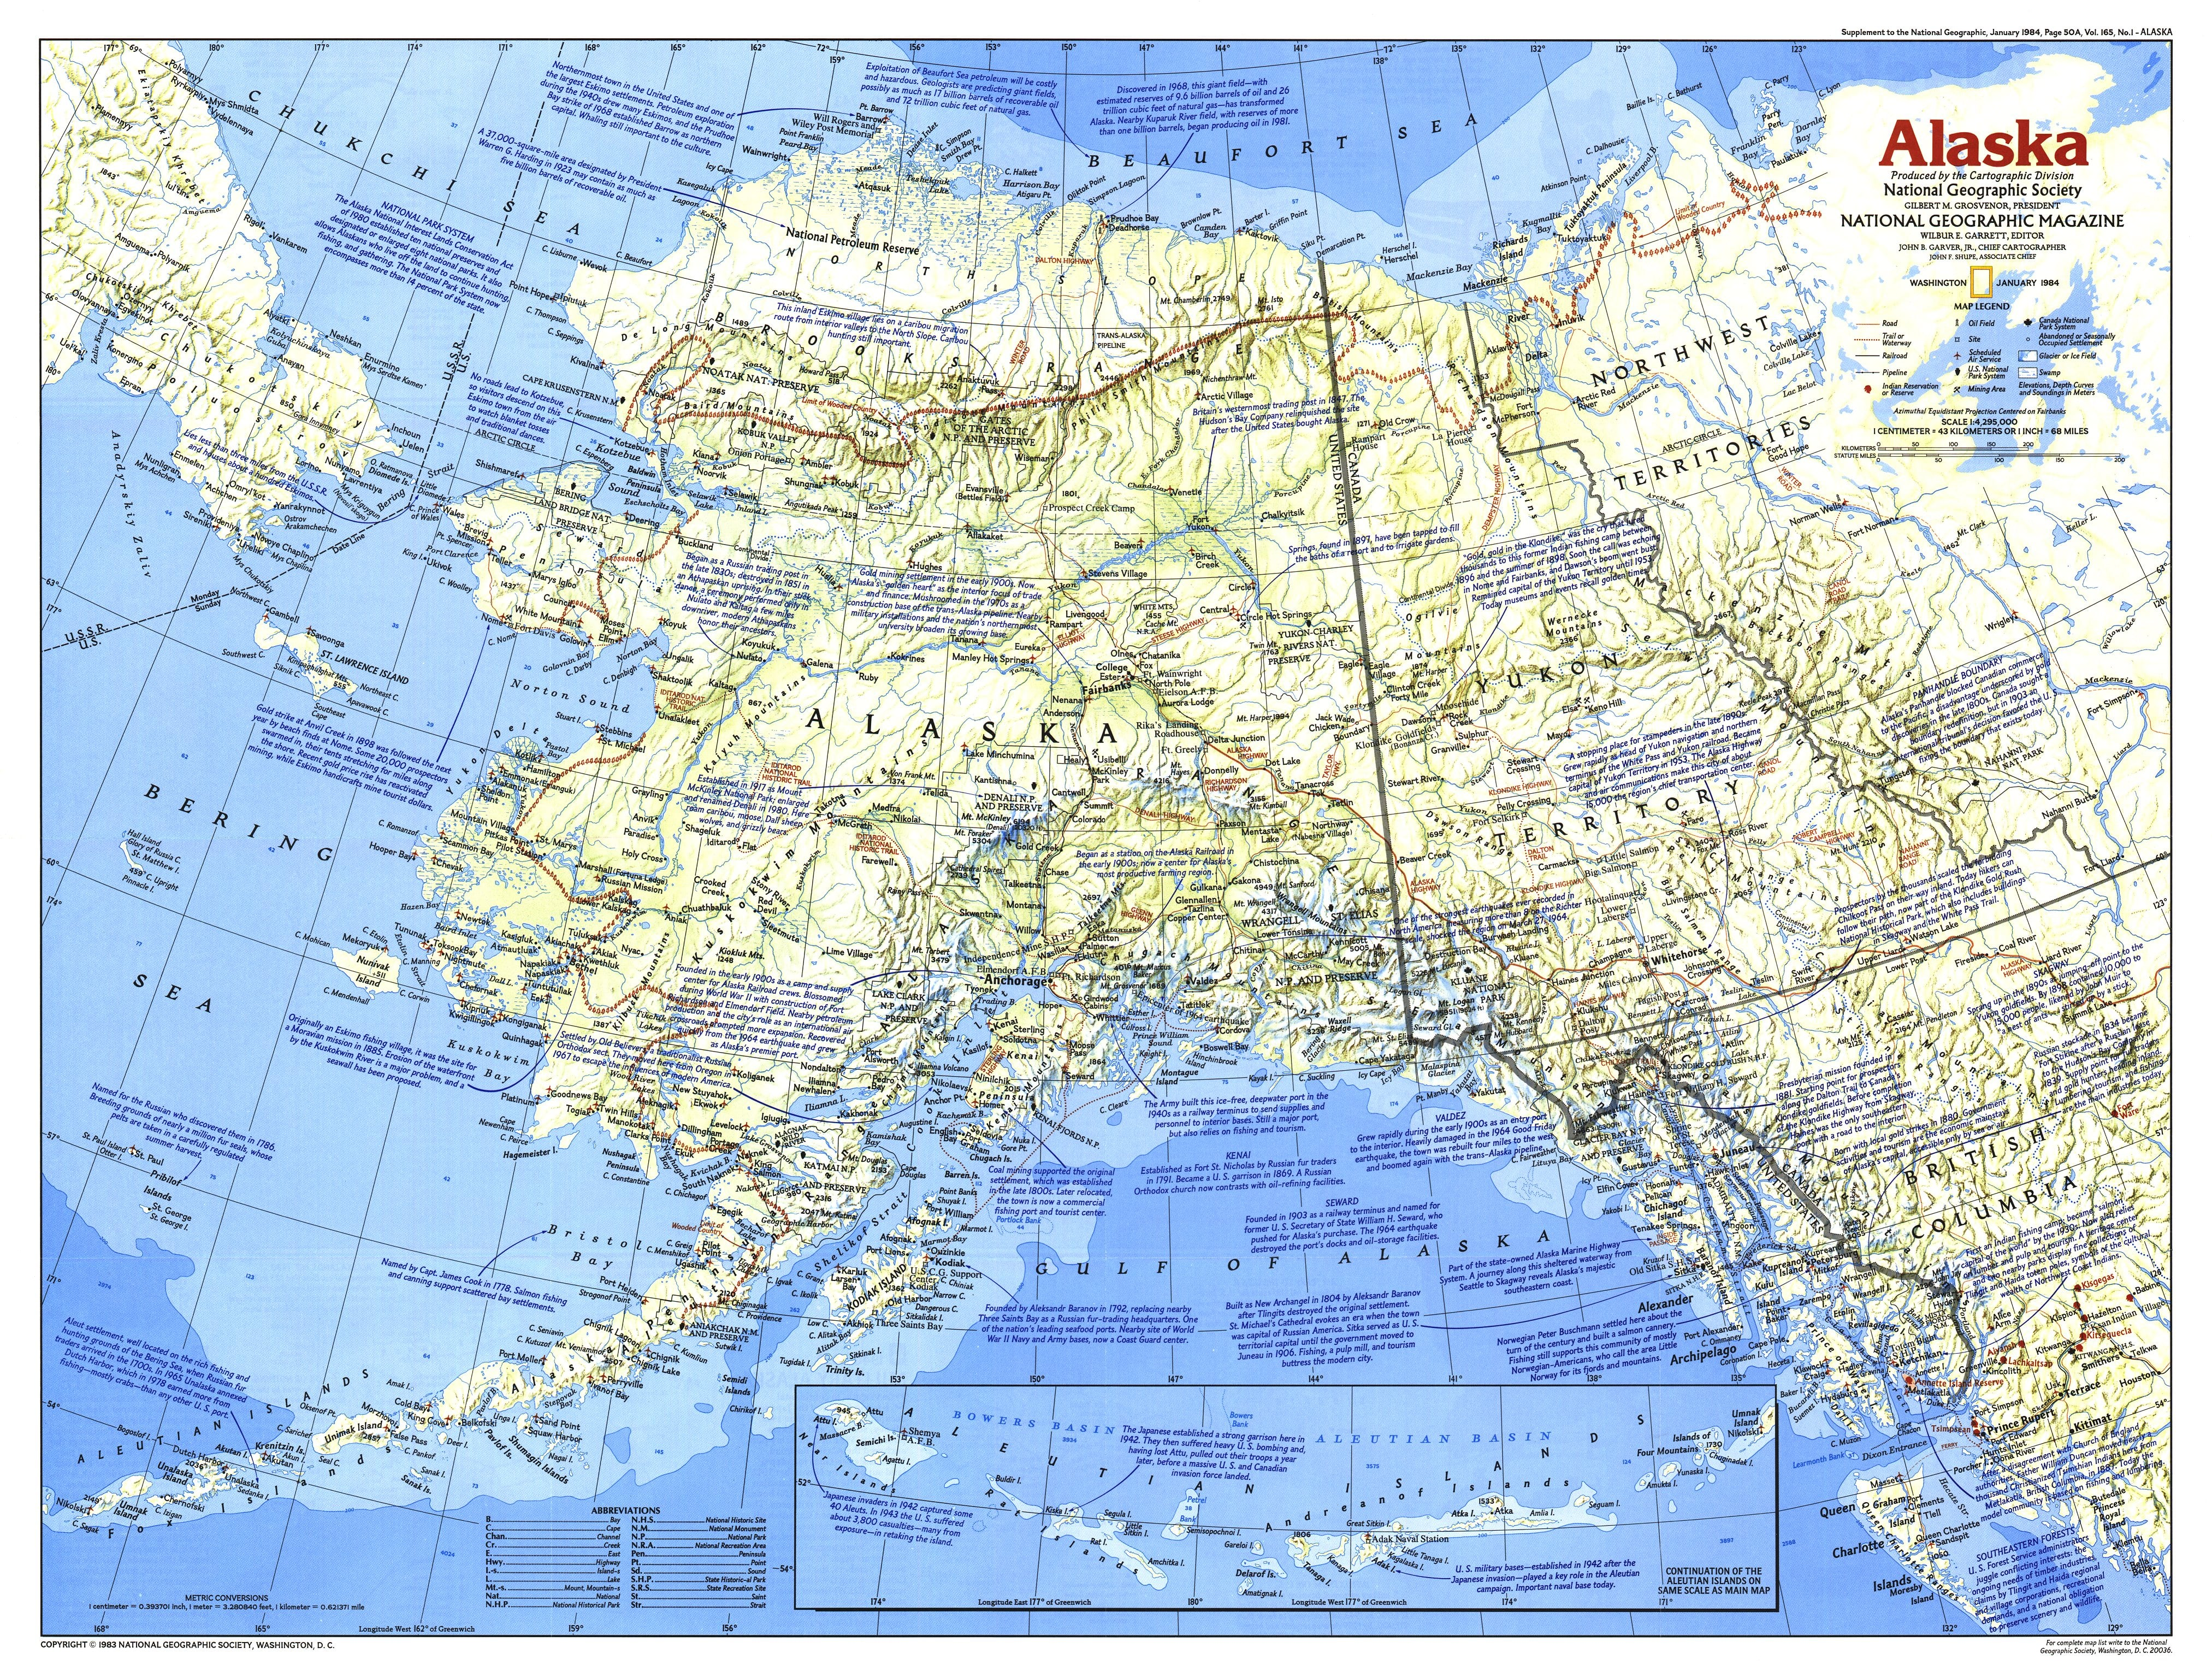 NGS 1984 Alaska Map Side 1